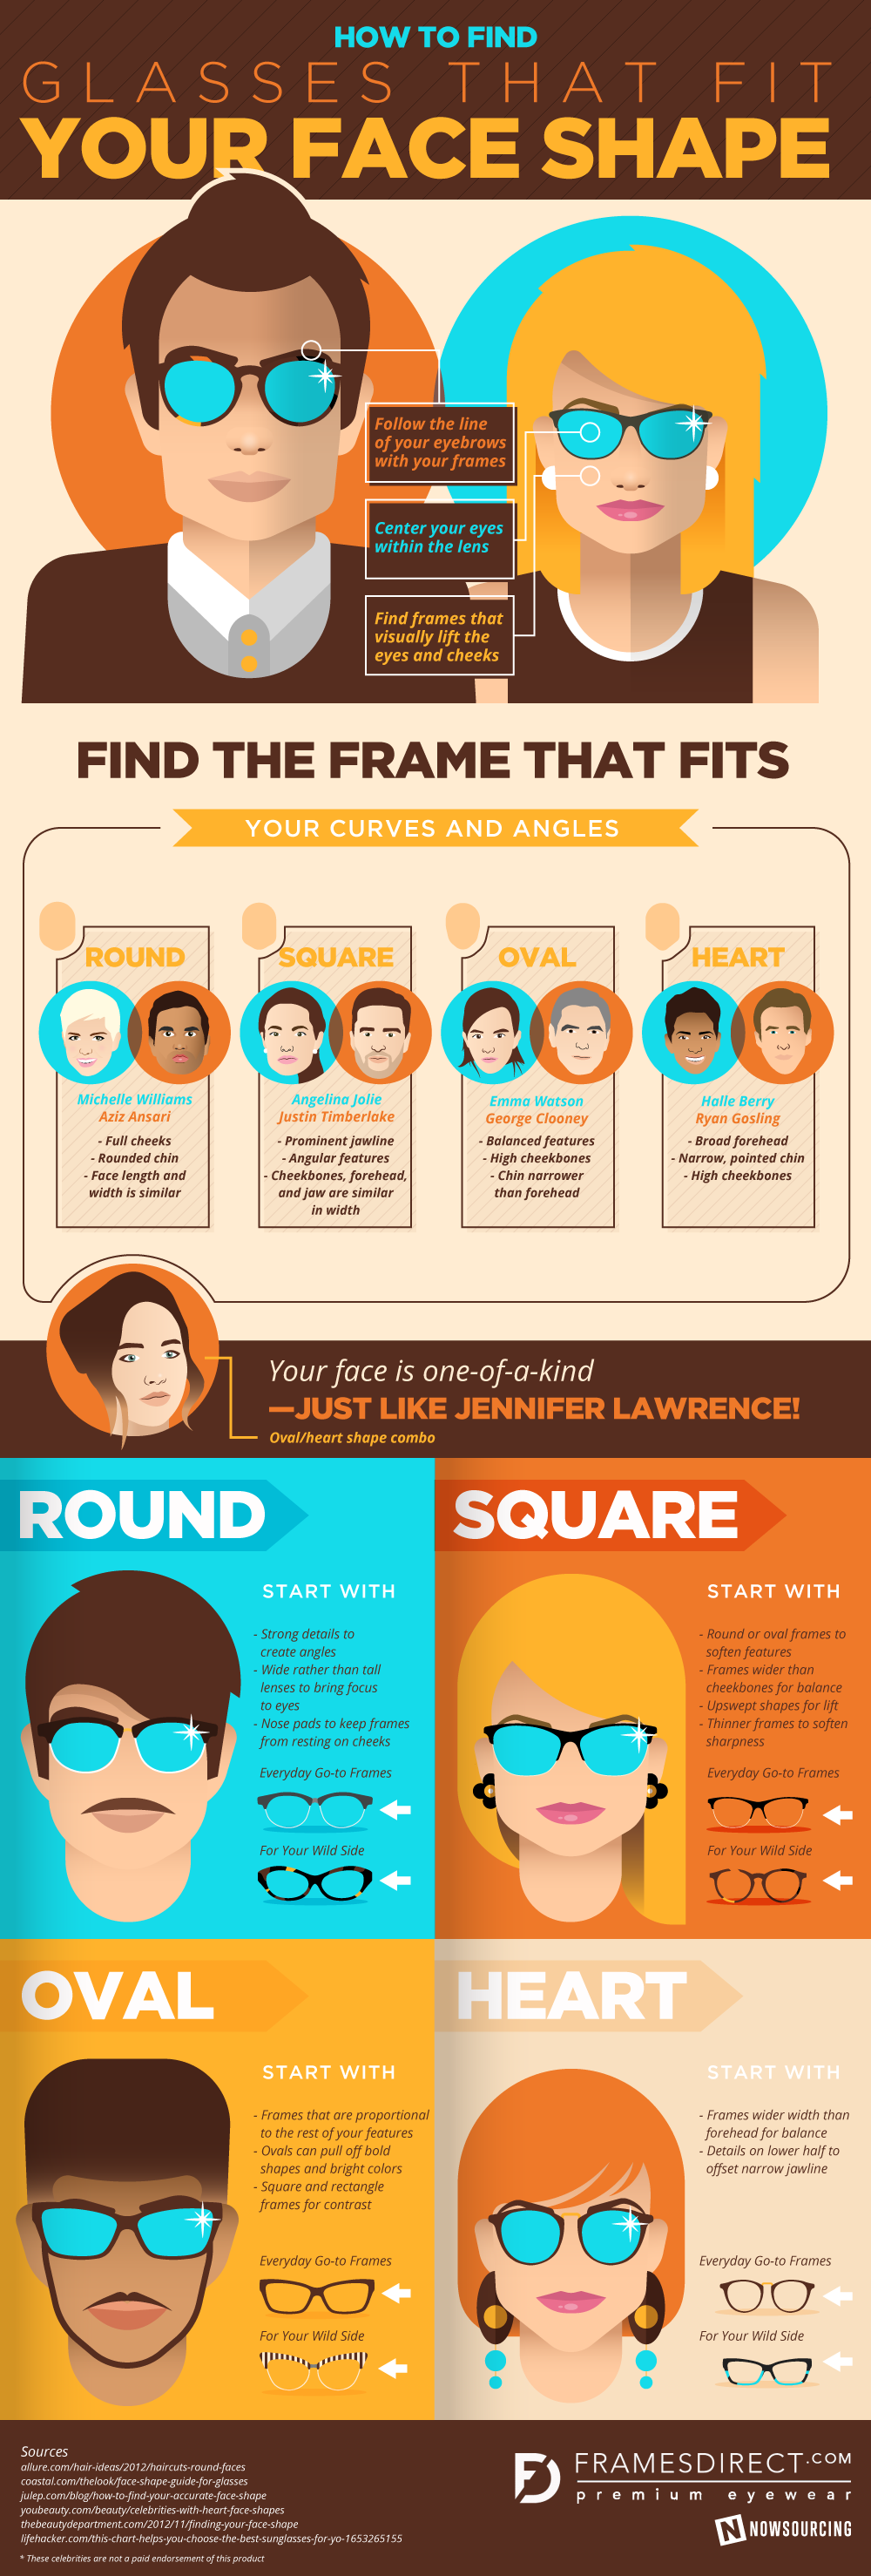 0a8e5b83420 Glasses for Your Face Shape Infographic